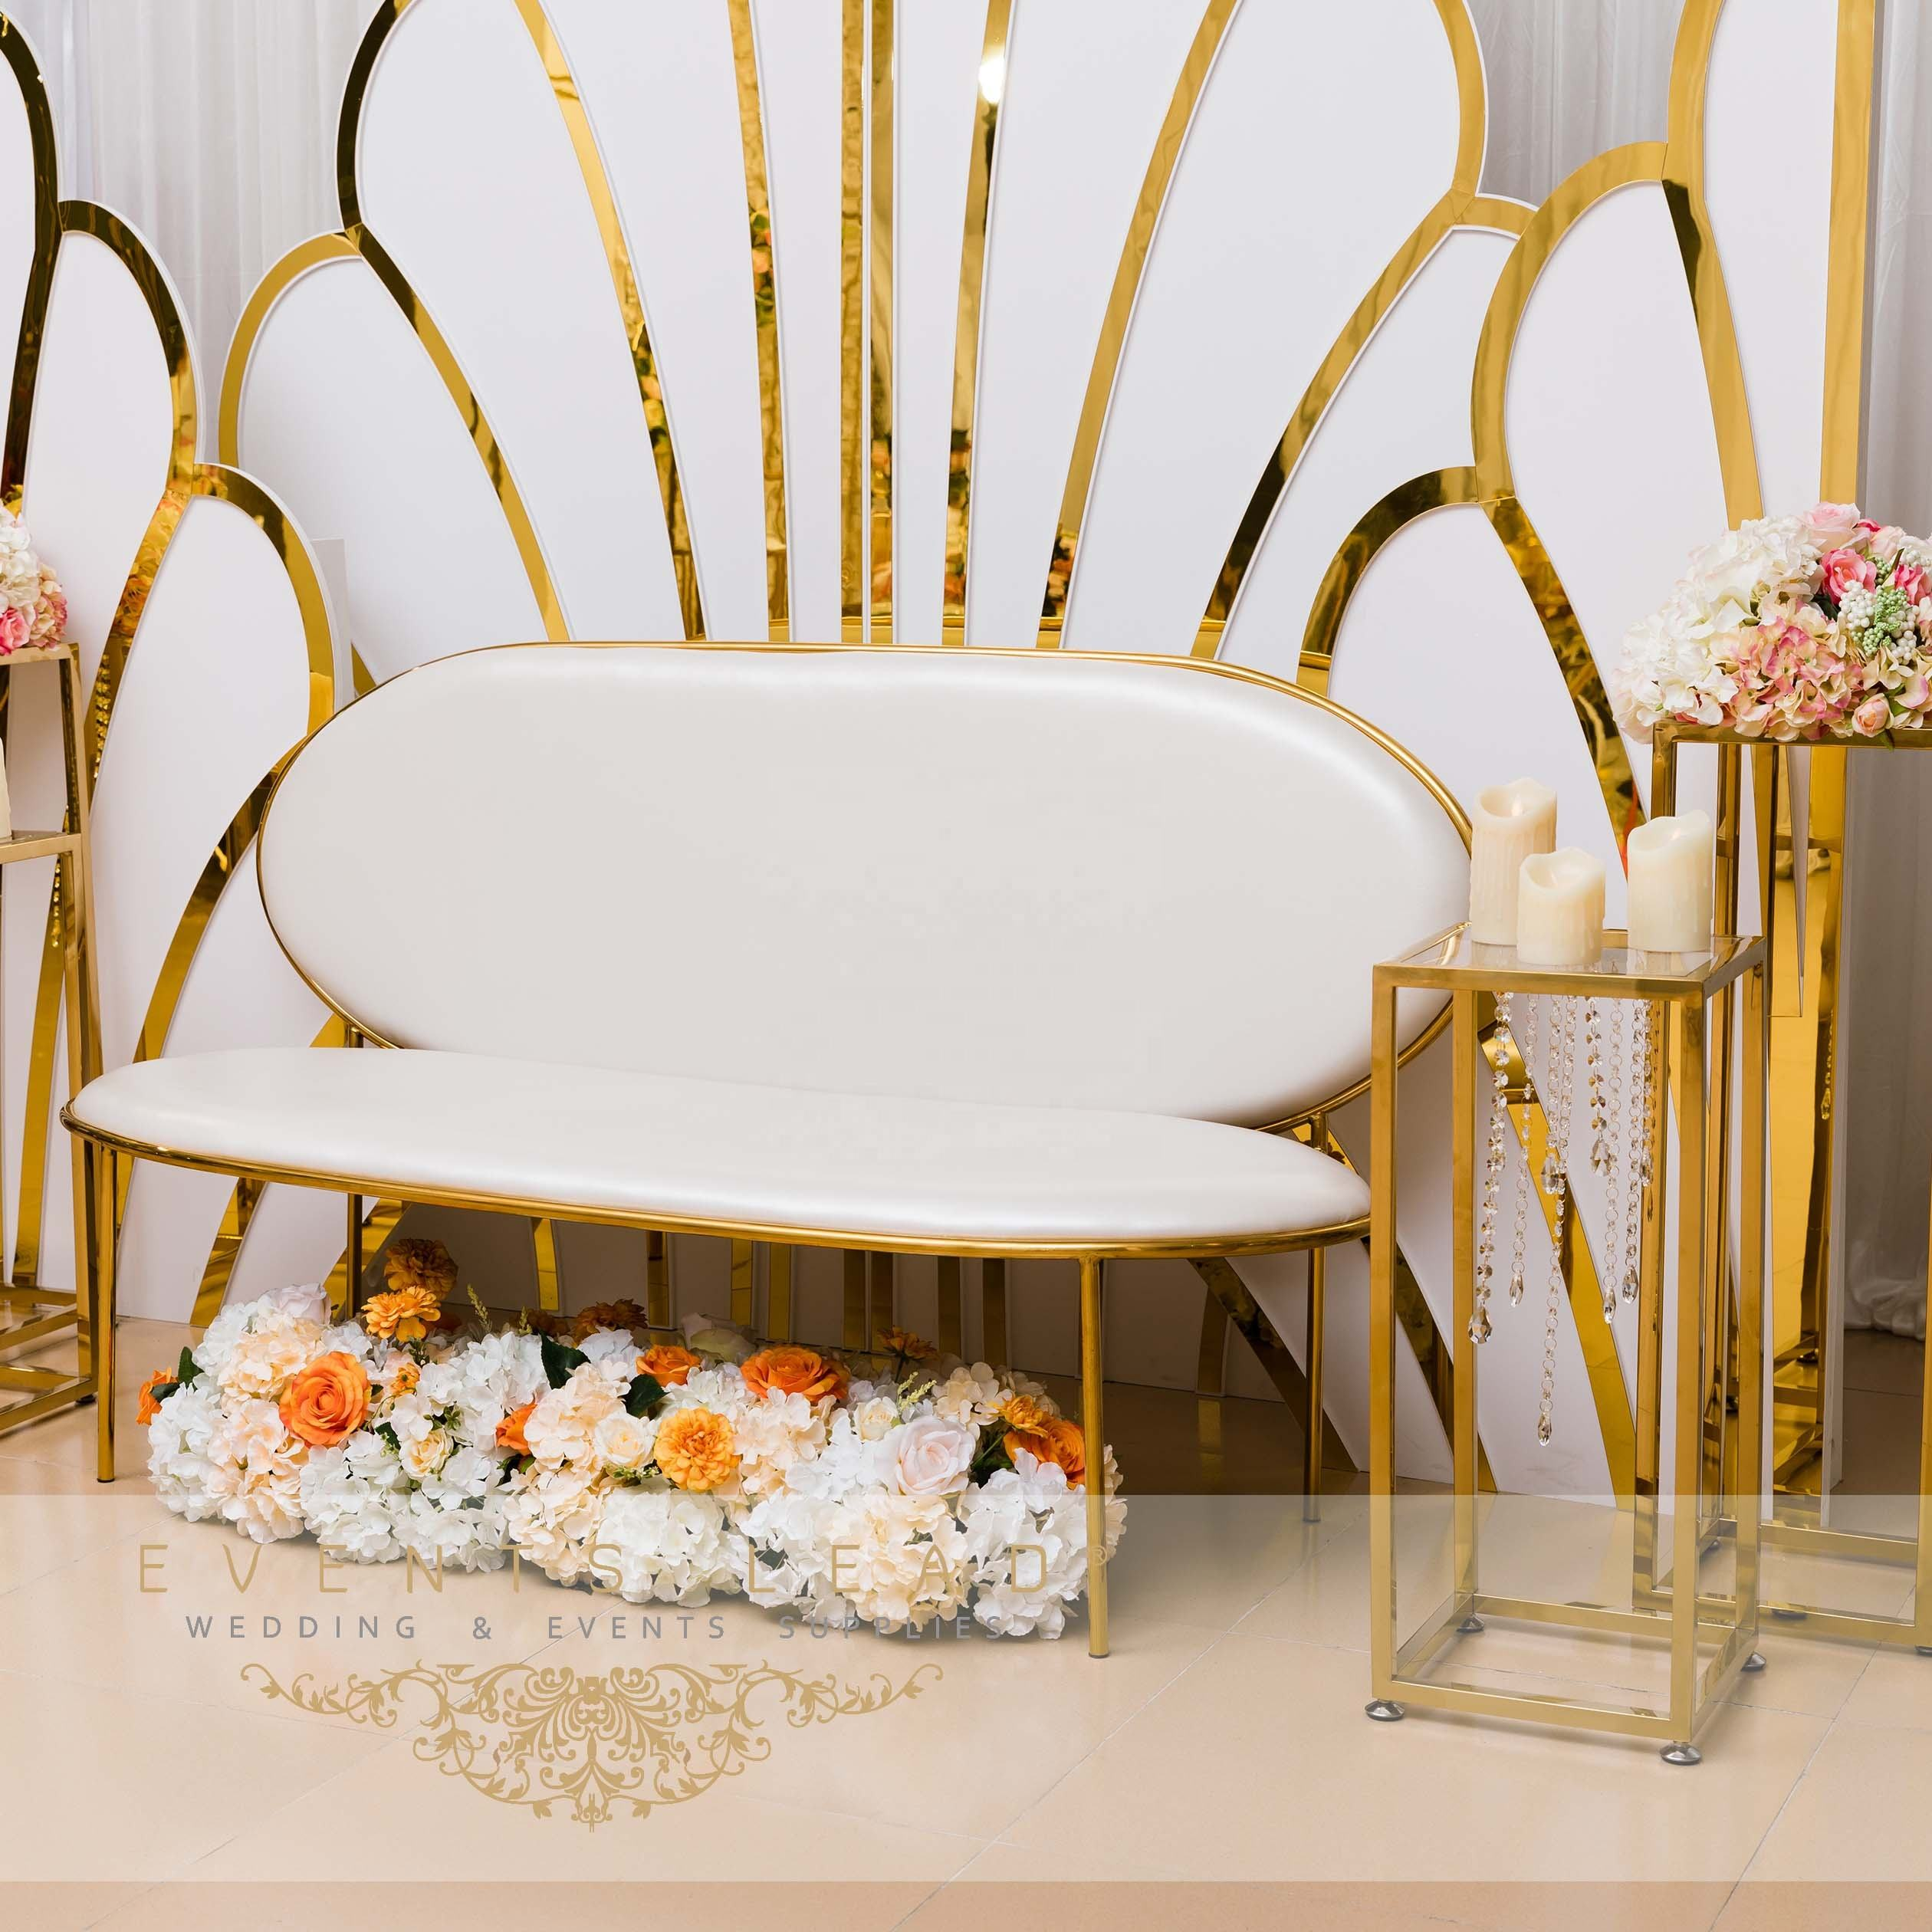 Selling Superb Process Event Furniture Exquisite Classic CHAISE Sofa From Wedding Events Decoration Supplies